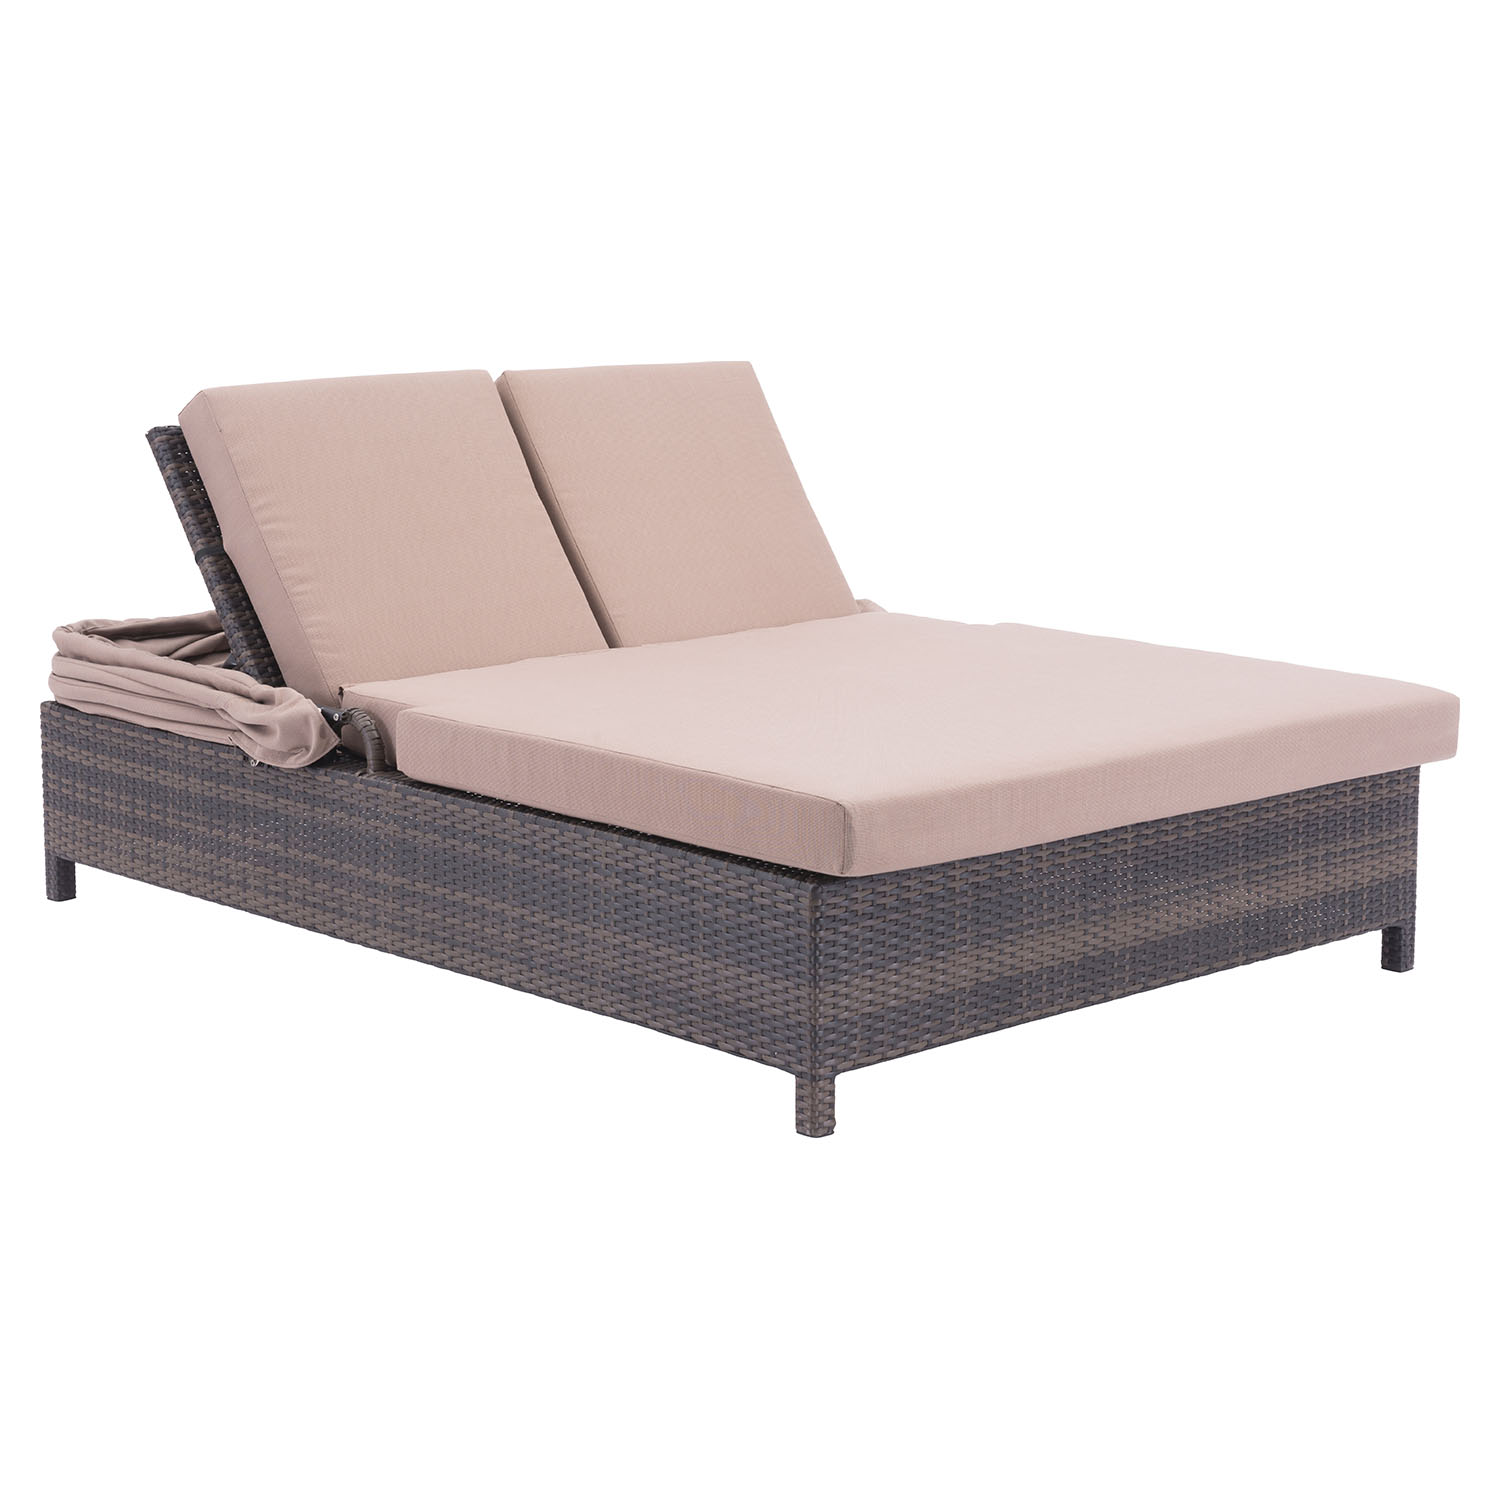 Siesta Key Double Chaise Lounge Brown and Beige